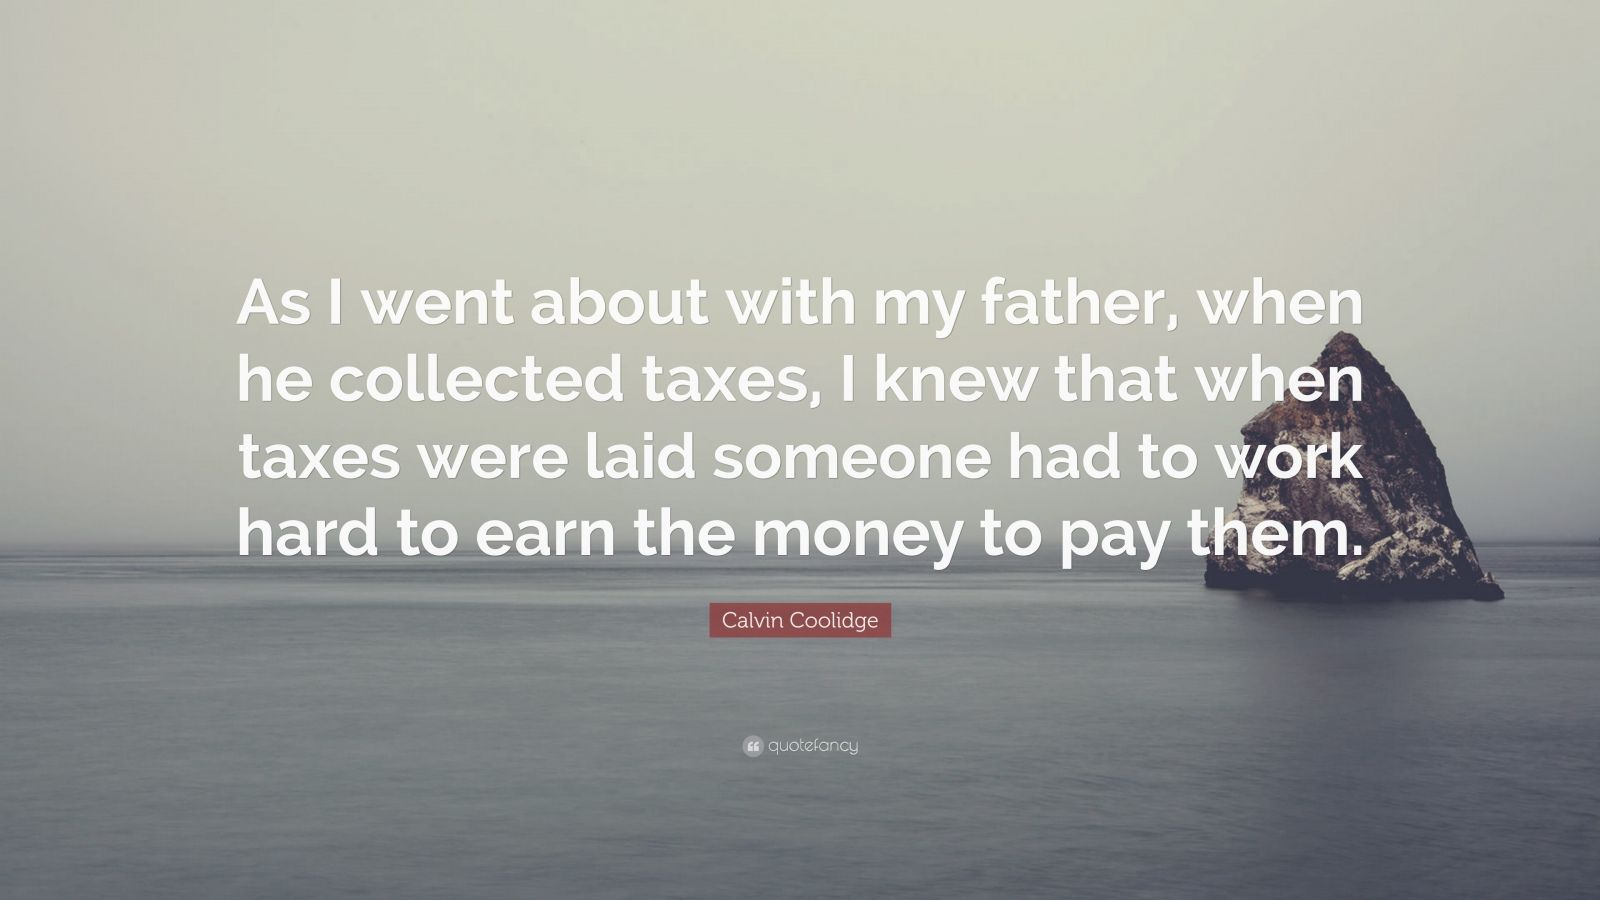 """Calvin Coolidge Quote: """"As I went about with my father, when he collected taxes, I knew that when taxes were laid someone had to work hard to earn the money to pay them."""""""